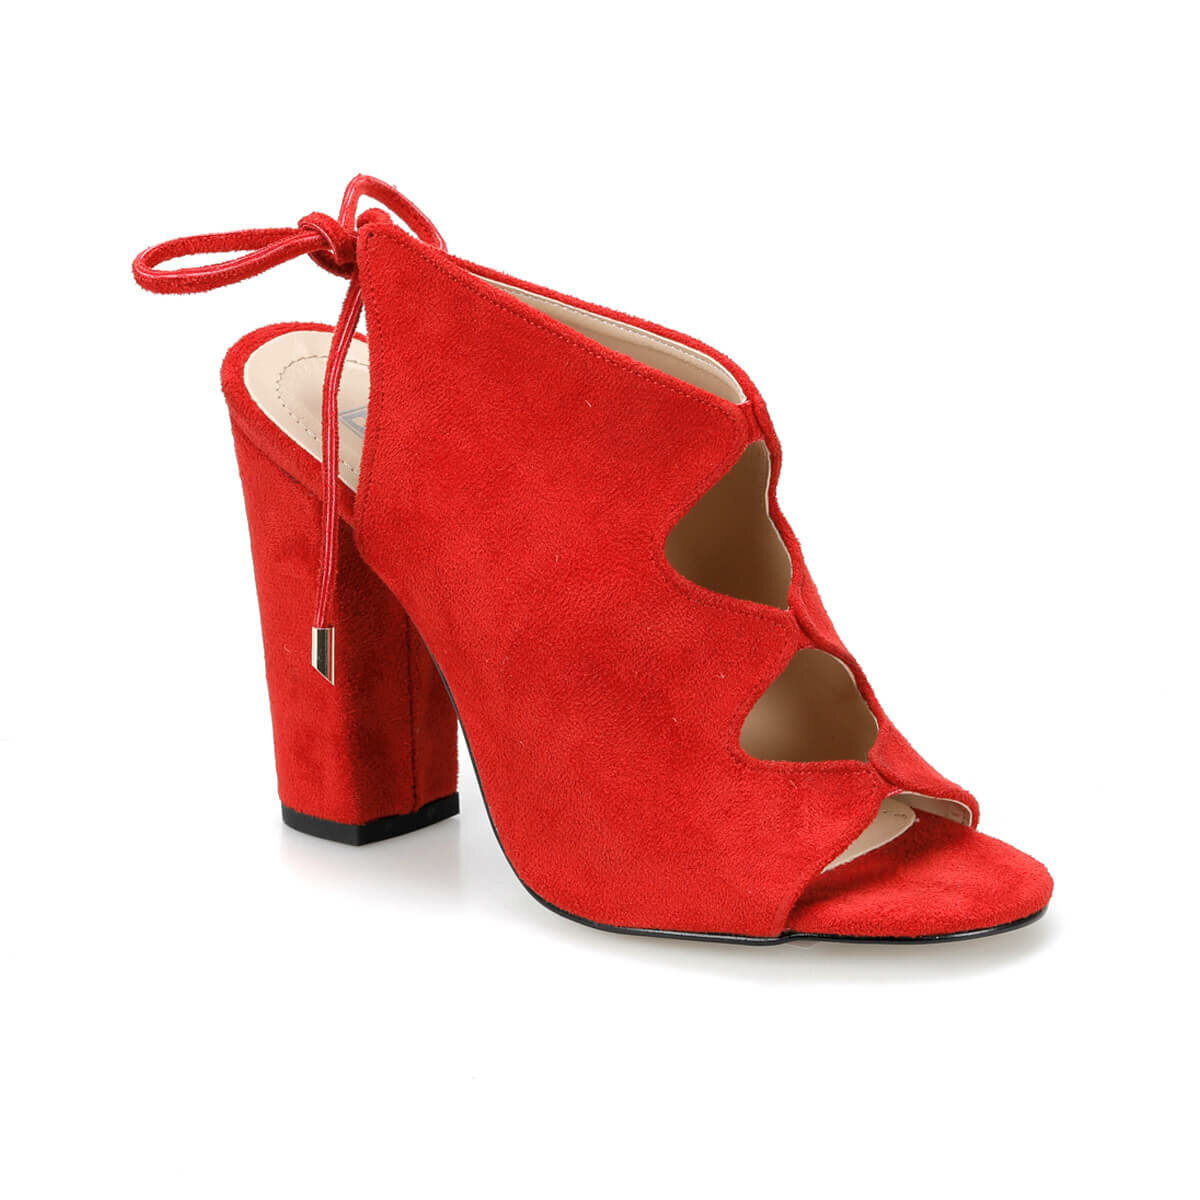 FLO DS19049 Red Women 'S High-Heeled Boots Miss F